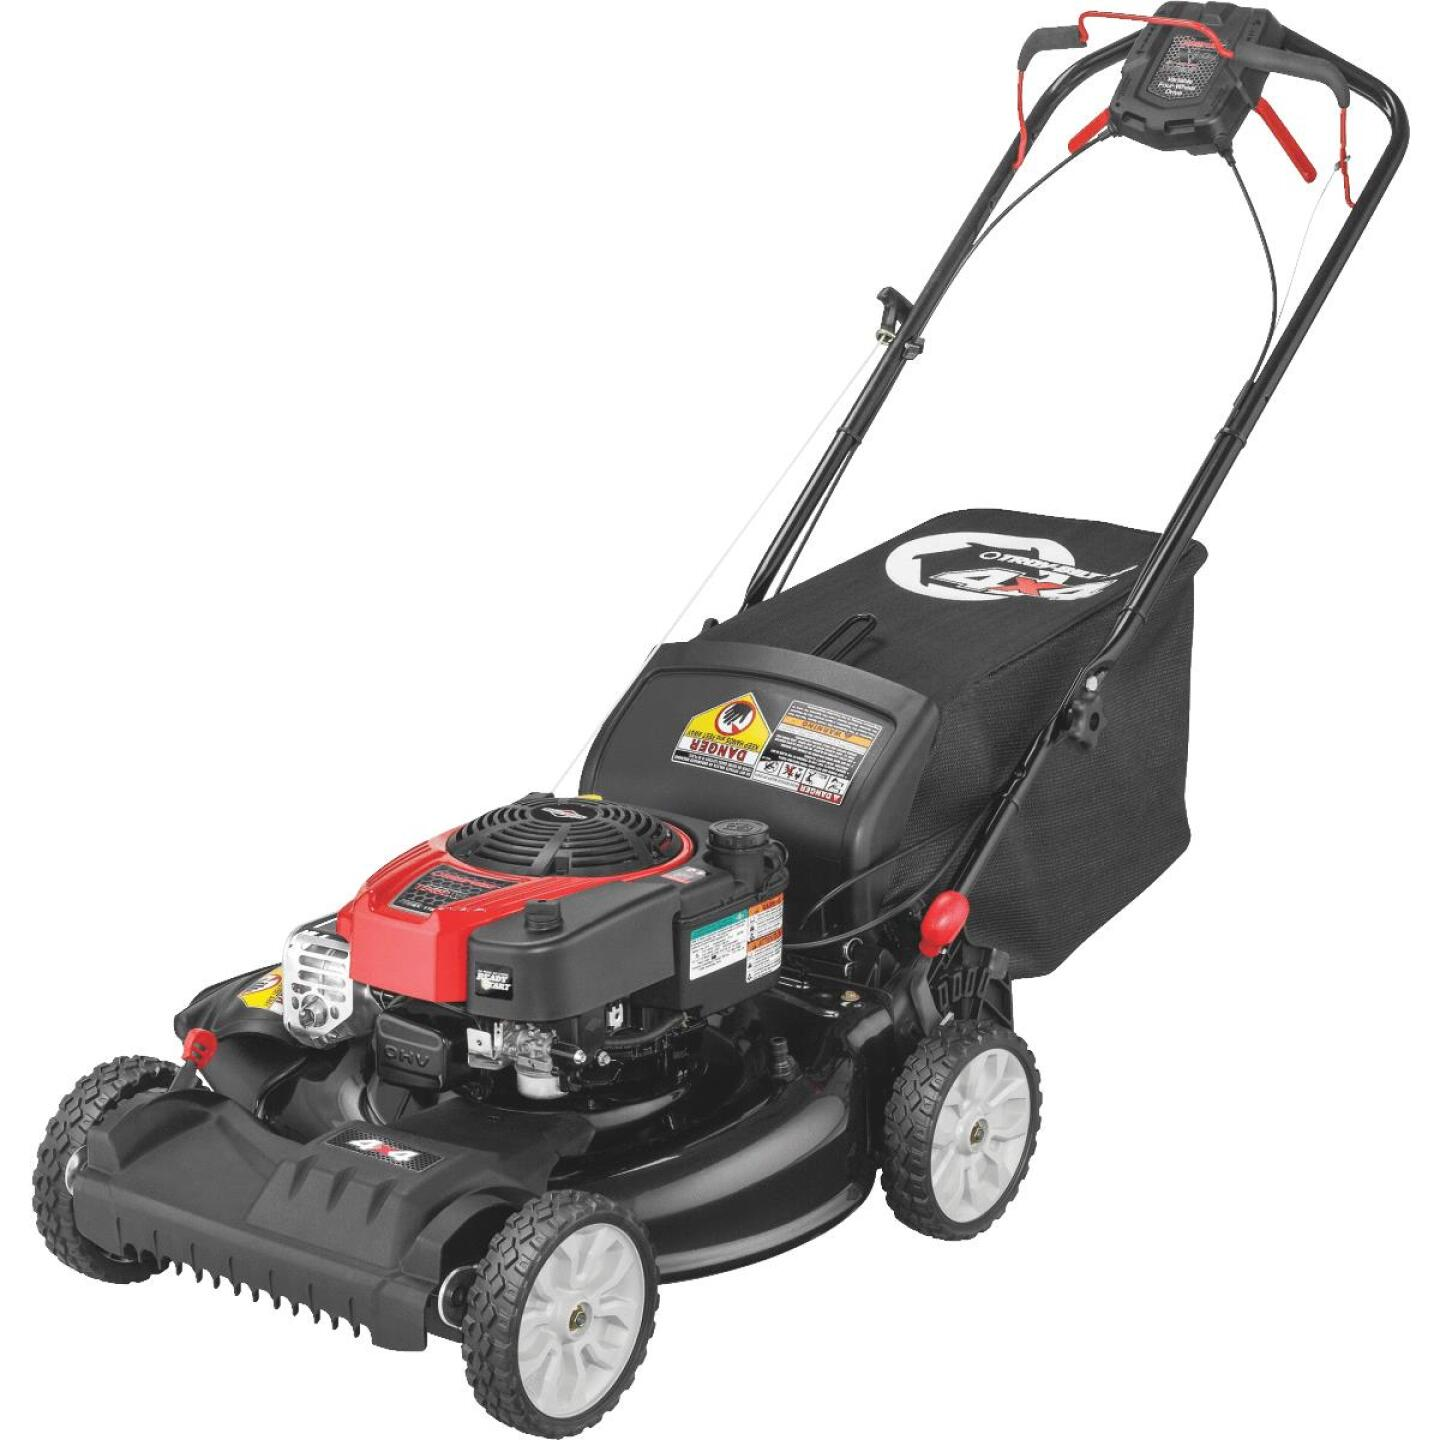 Troy-Bilt 21 In. 175cc Briggs & Stratton 4X4 Self-Propelled Gas Lawn Mower Image 1